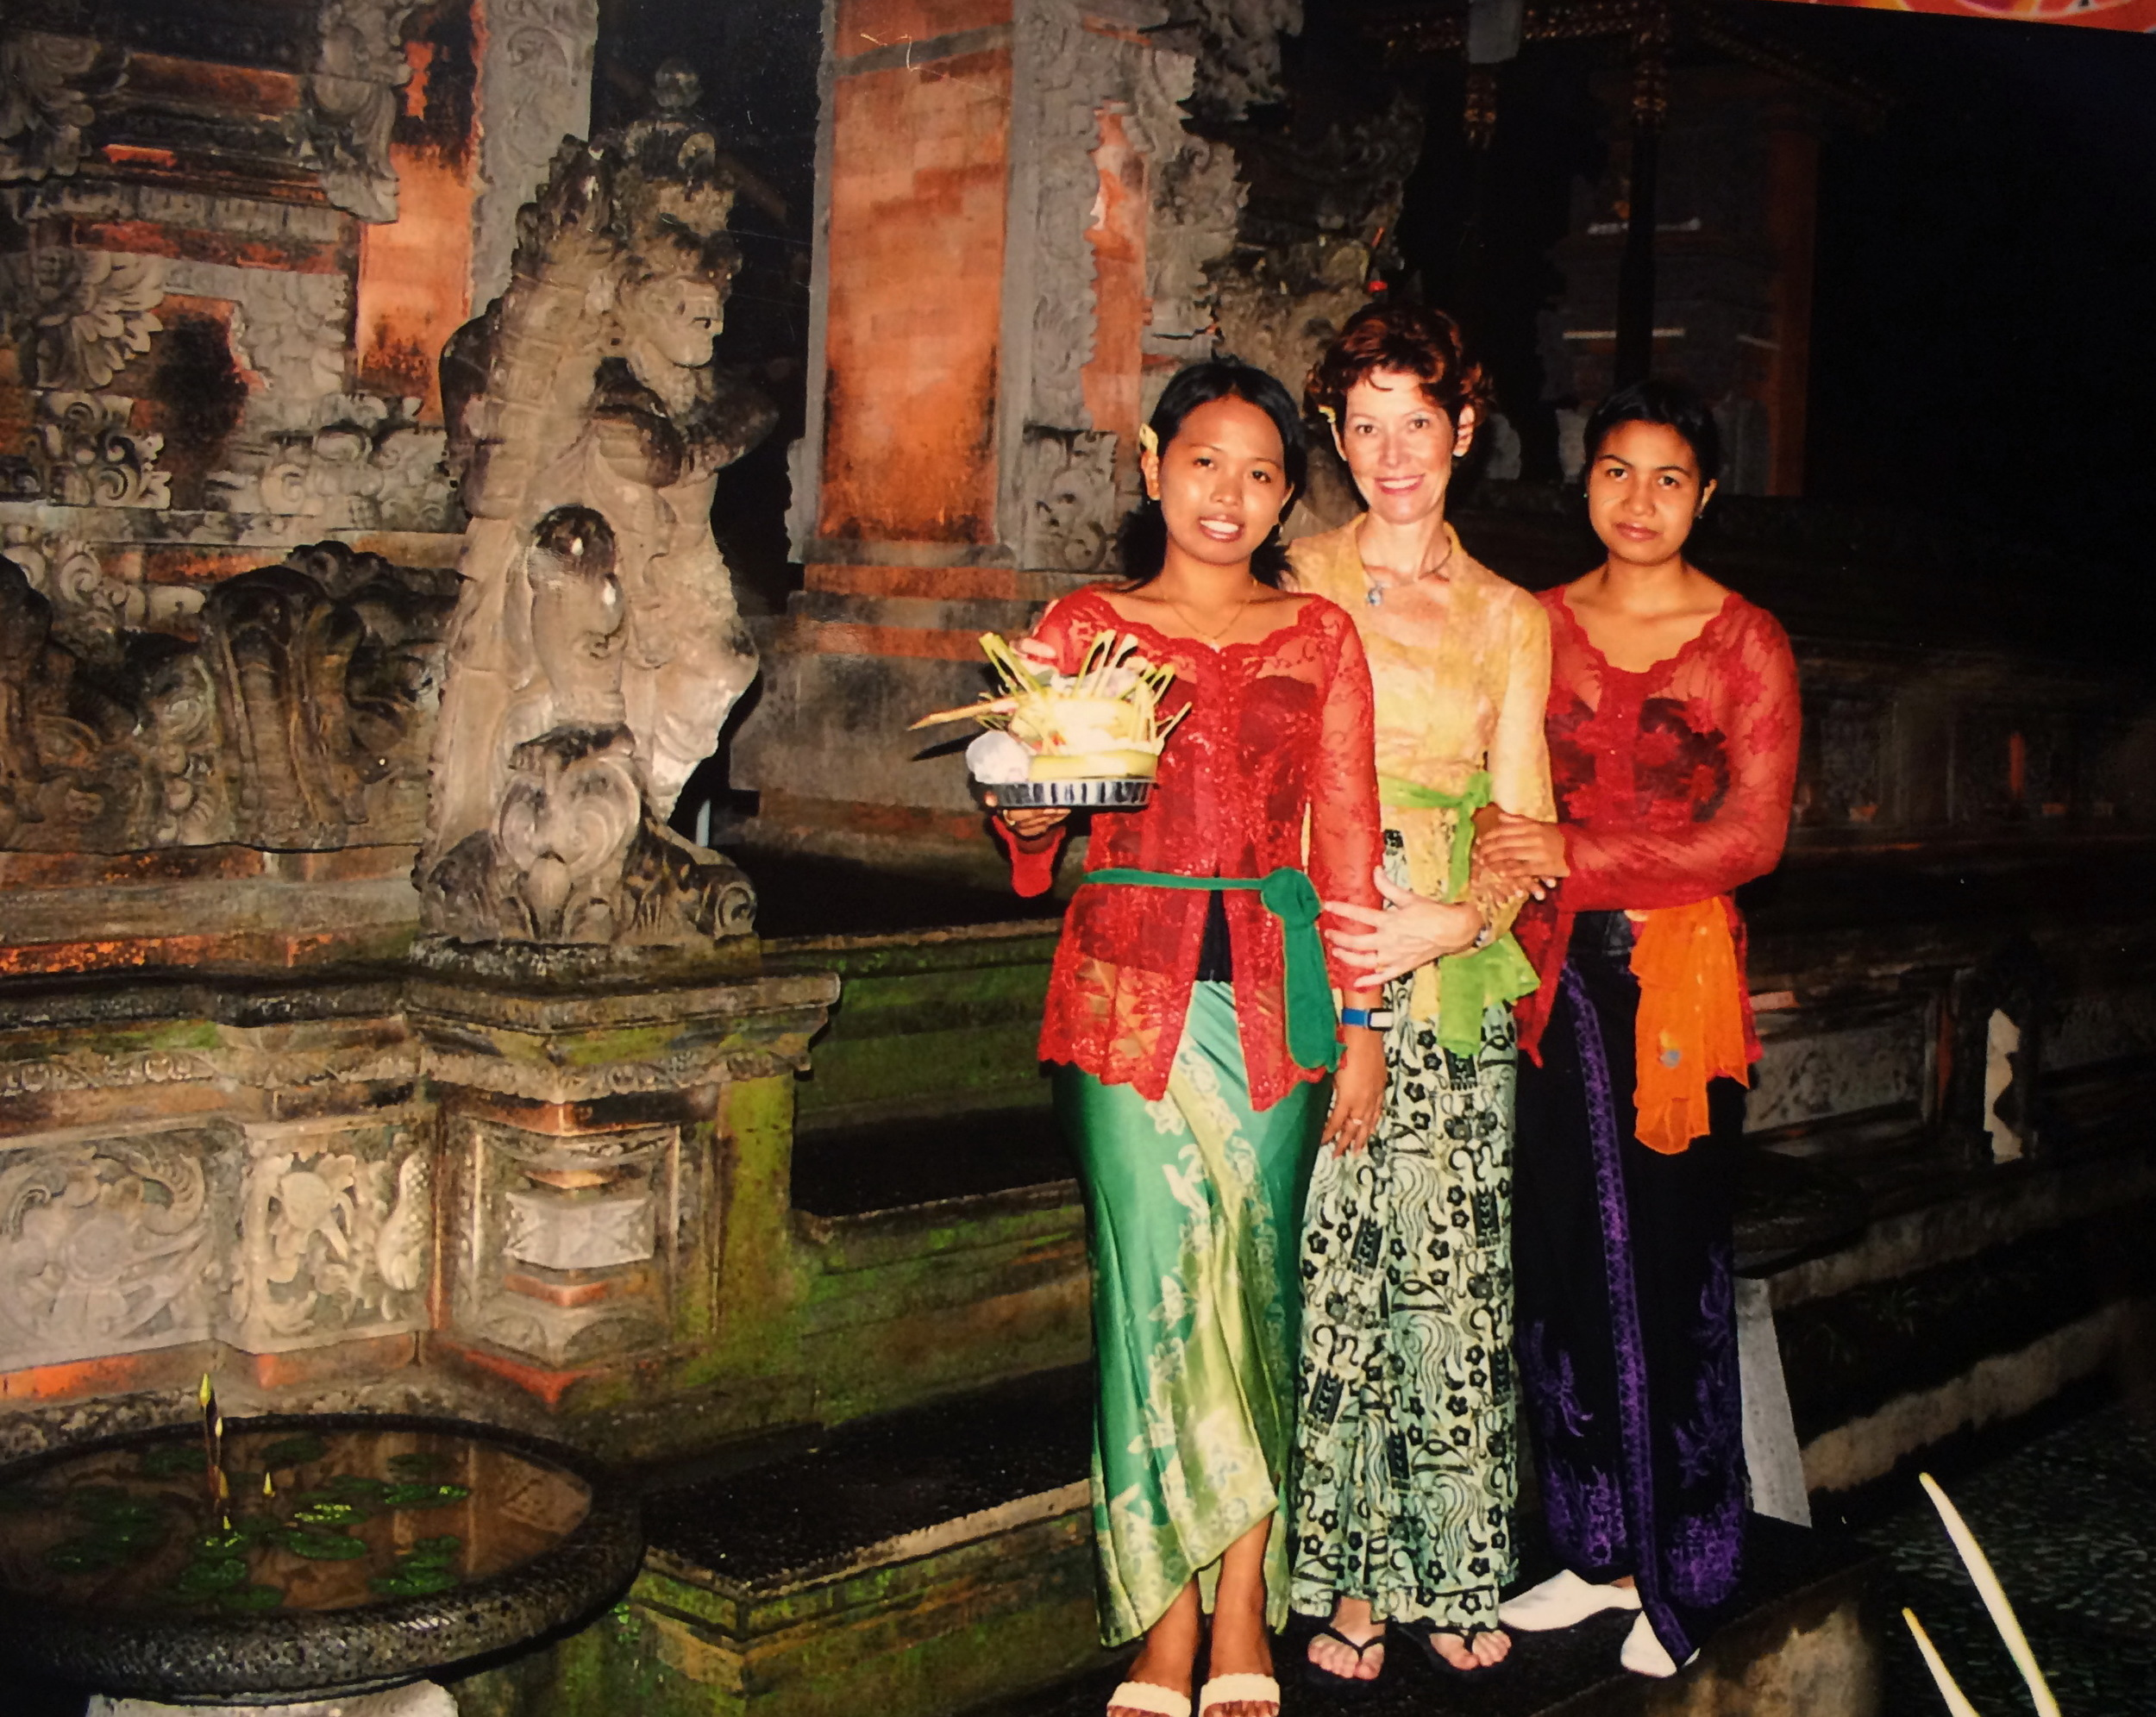 FIRST TIME AT A BALINESE CEREMONY